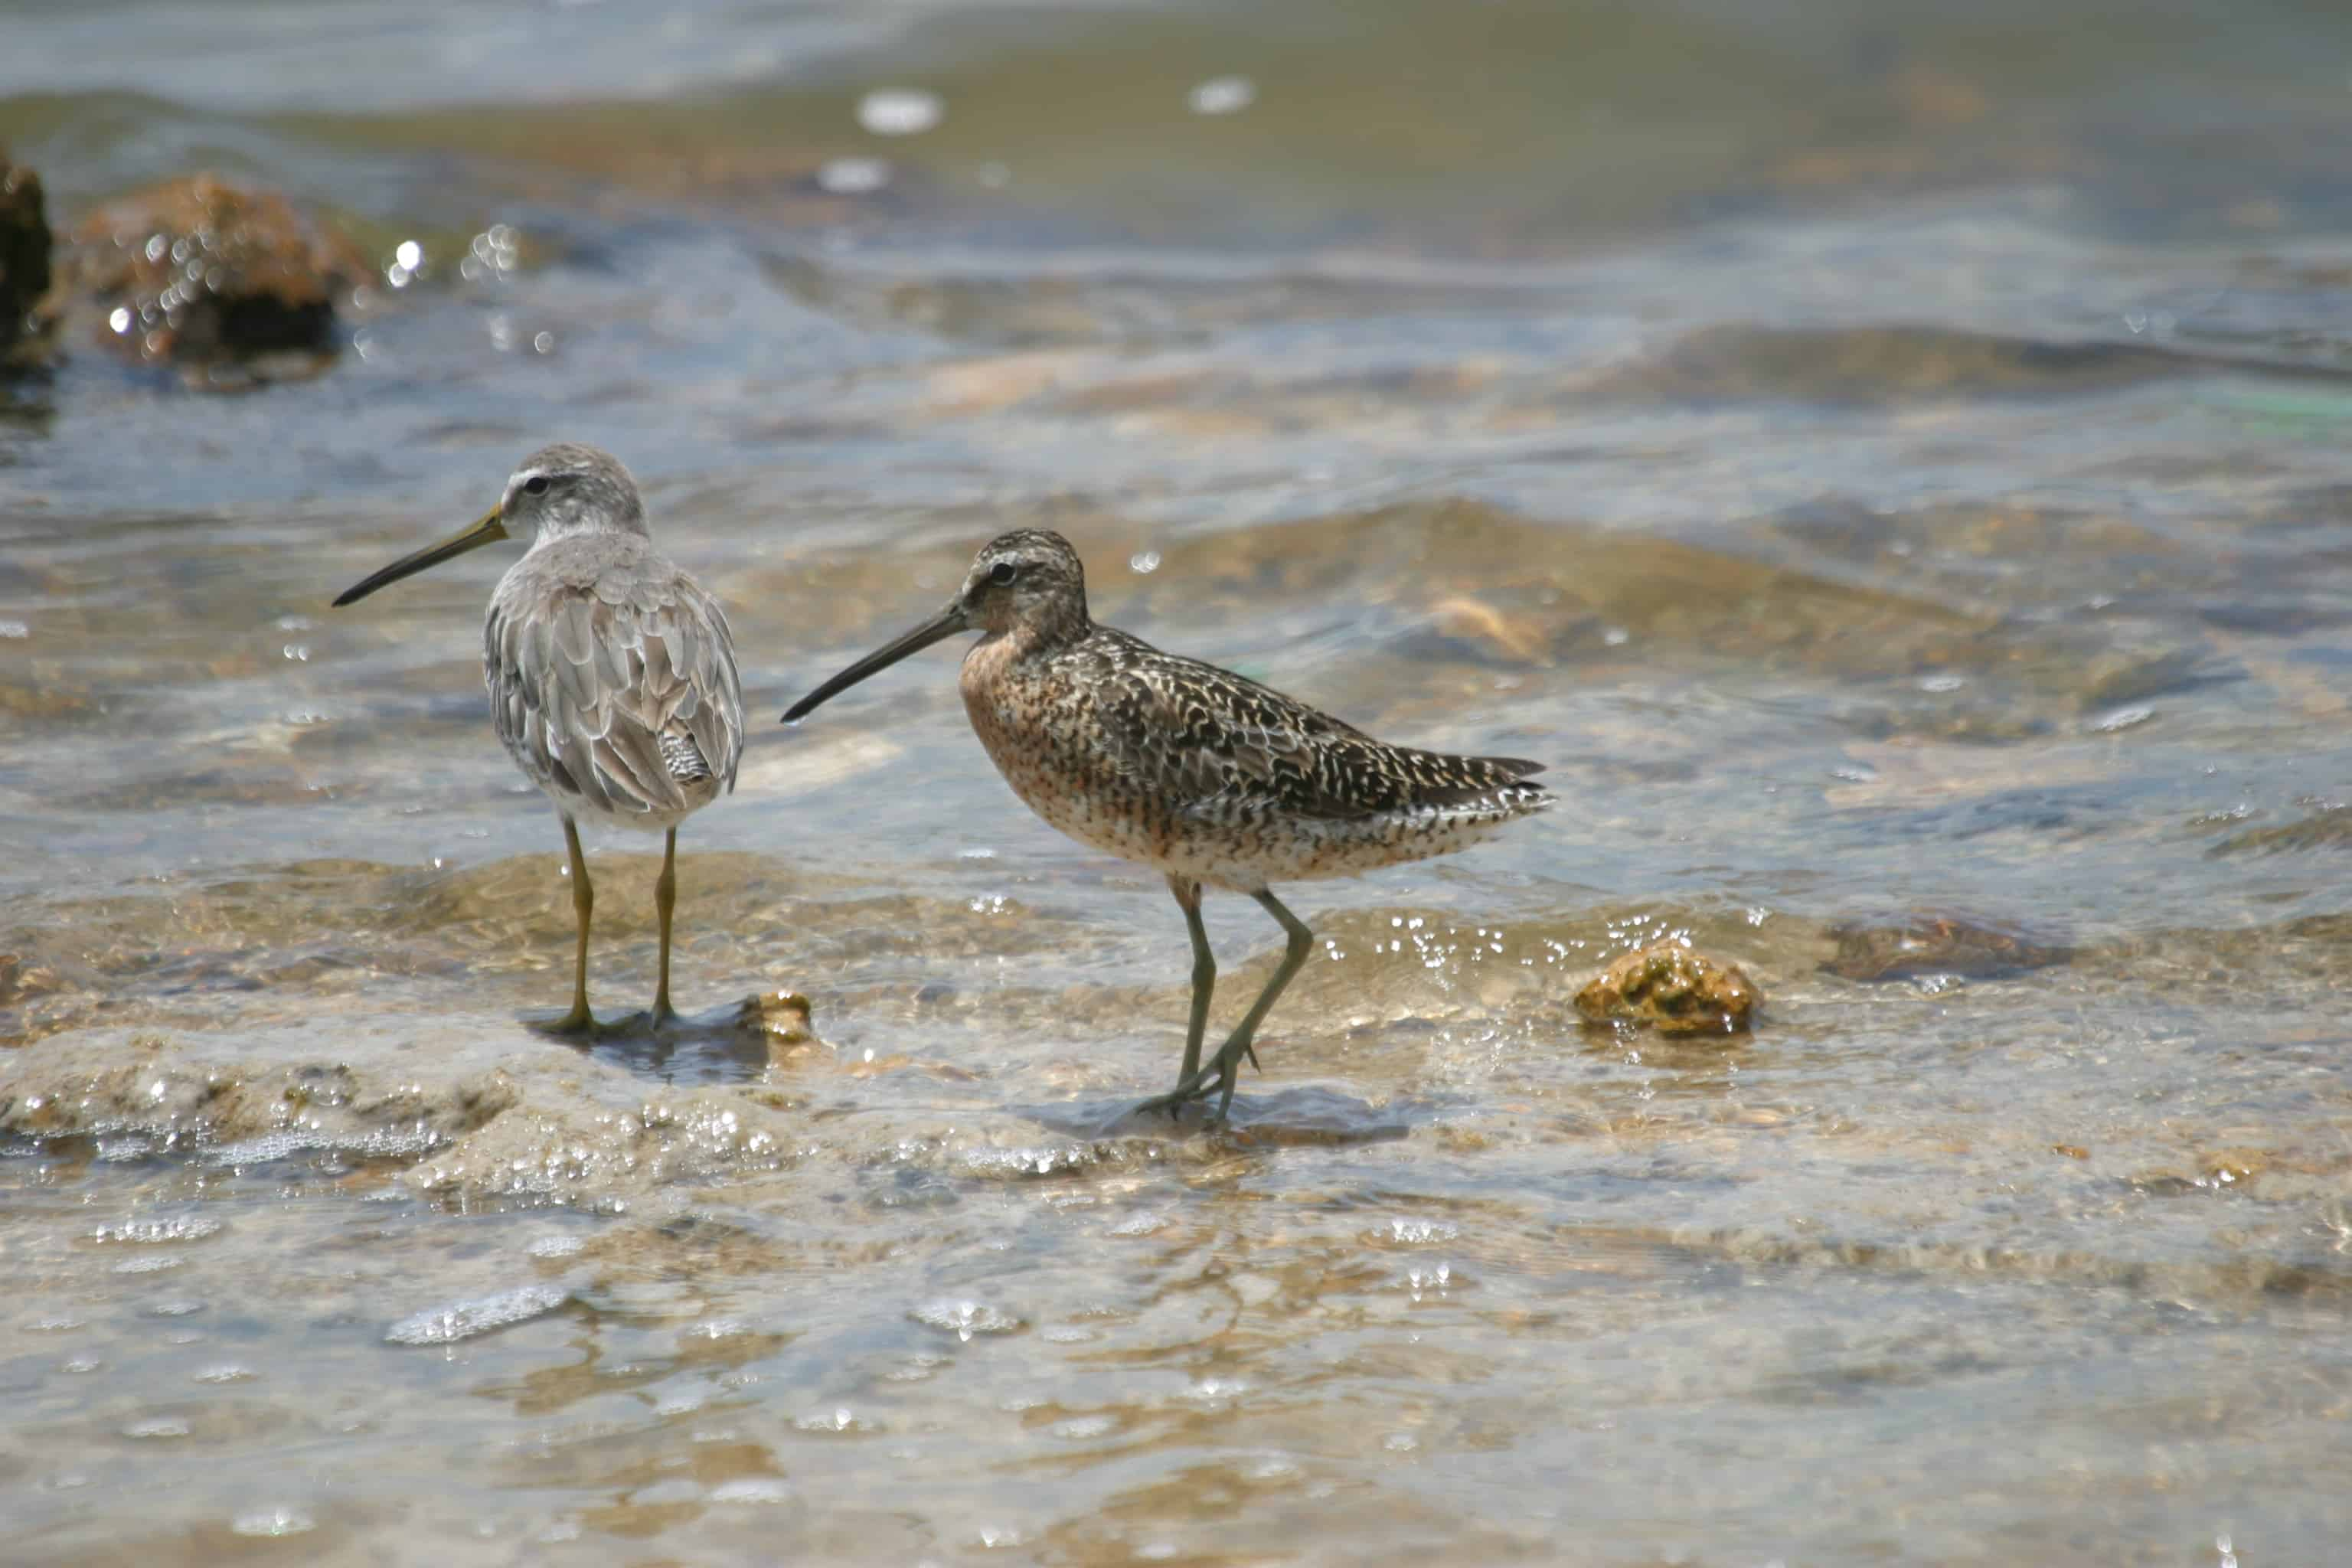 Short-billed dowitchers, migrant shorebirds from northern breeding grounds feed in the shallows: winter plumage on left and moulting into breeding plumage on right. Copyright: Dr Mike Pienkowski